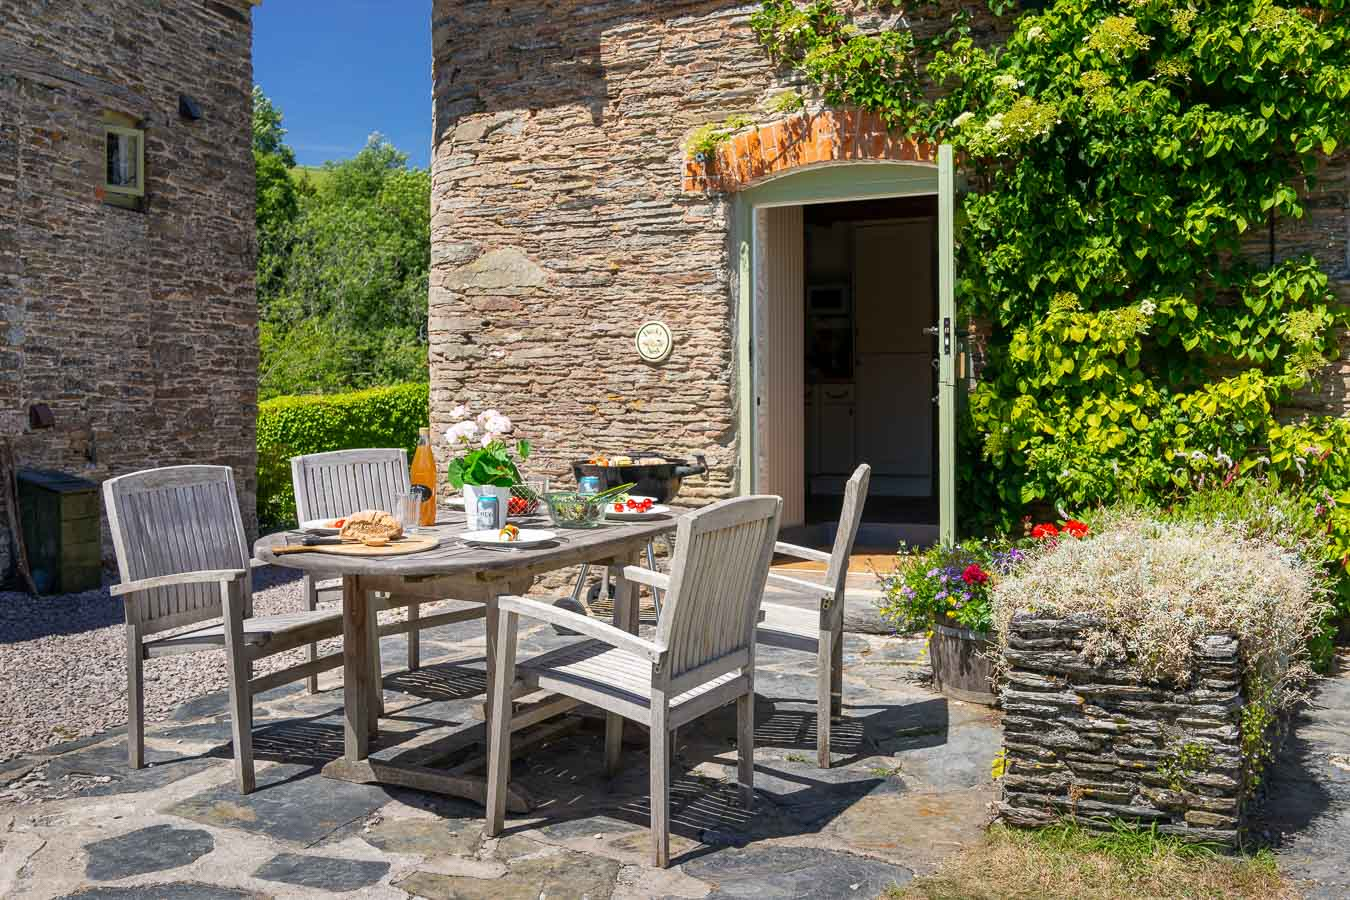 Alfresco dining on private patio outside Duck's Nest cottage Flear Farm.